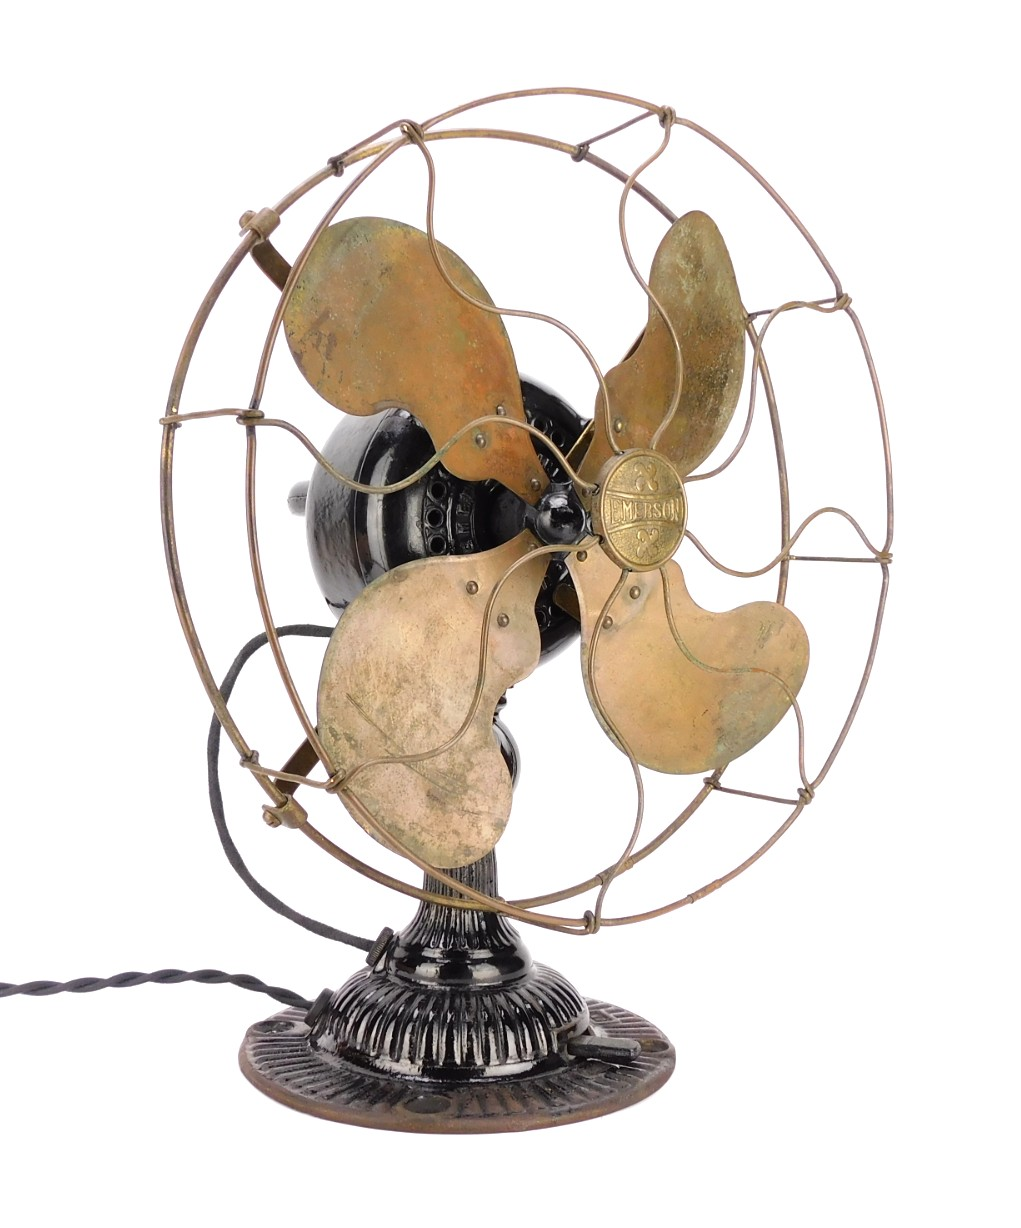 "Circa 1910 All Original Emerson 12646 12"" Lever Oscillator Desk Fan"